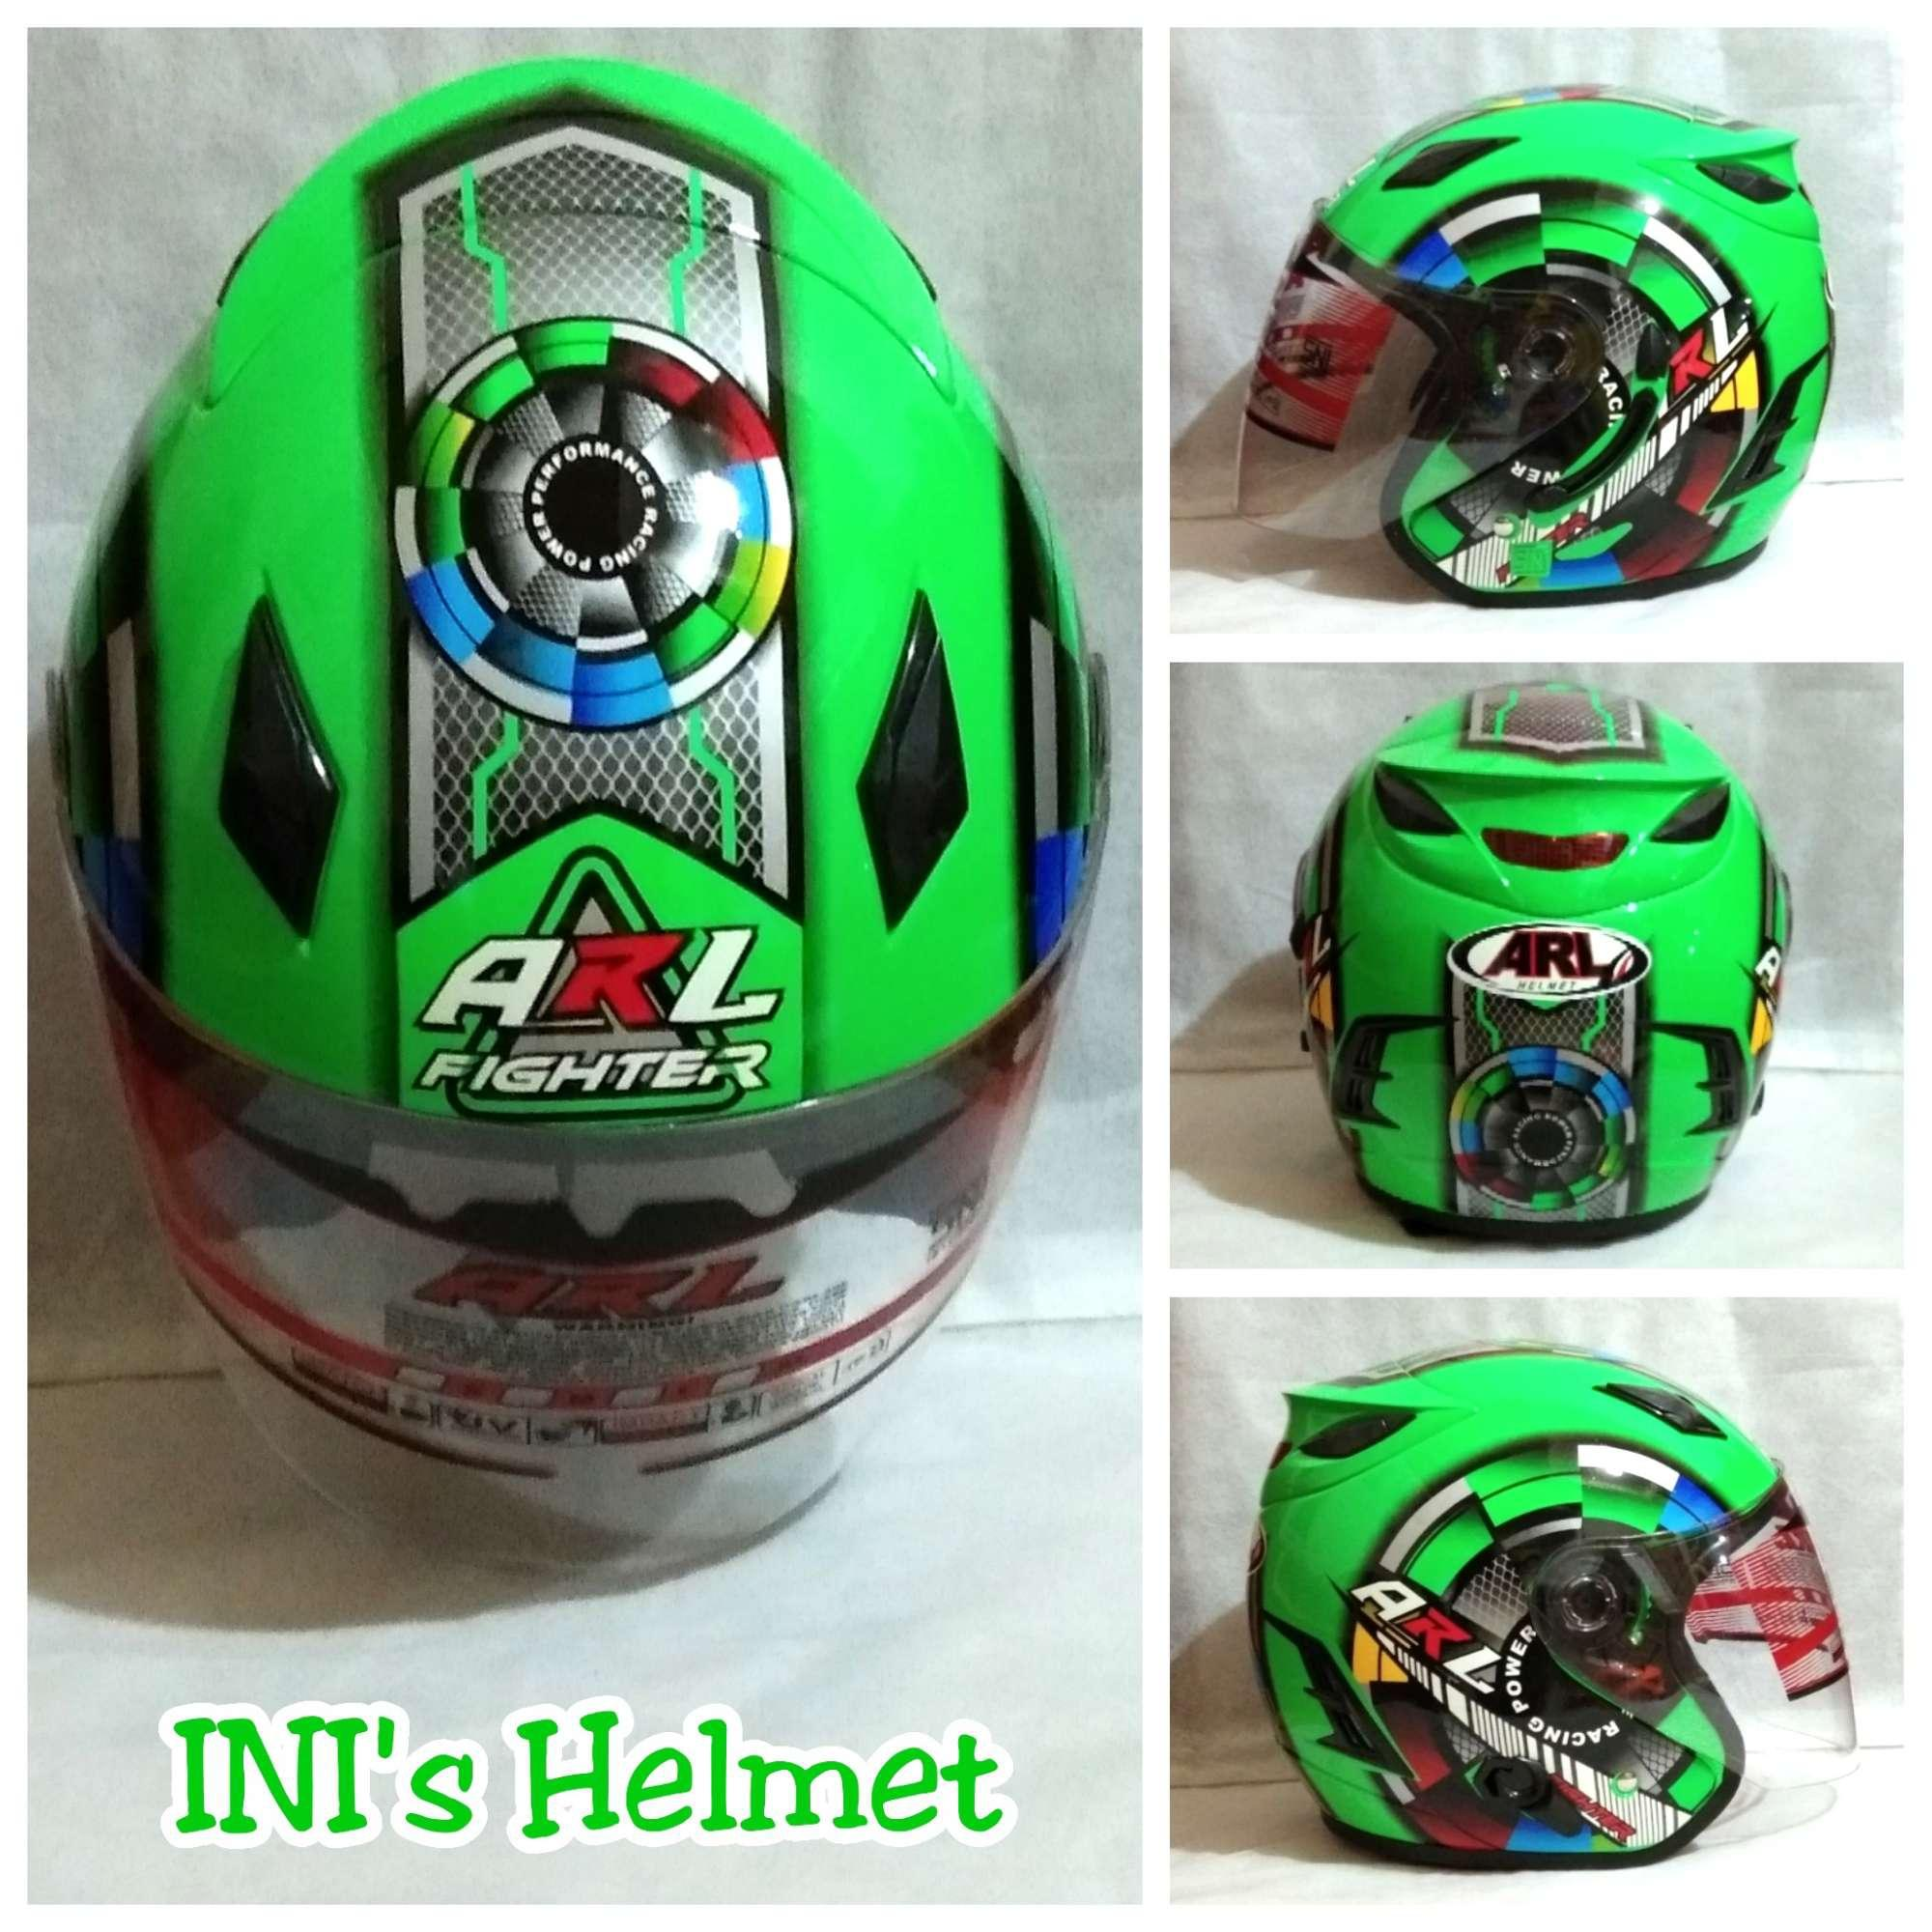 Helm ARL Centro Double Visor 2 Kaca Motif Hijau Fighter